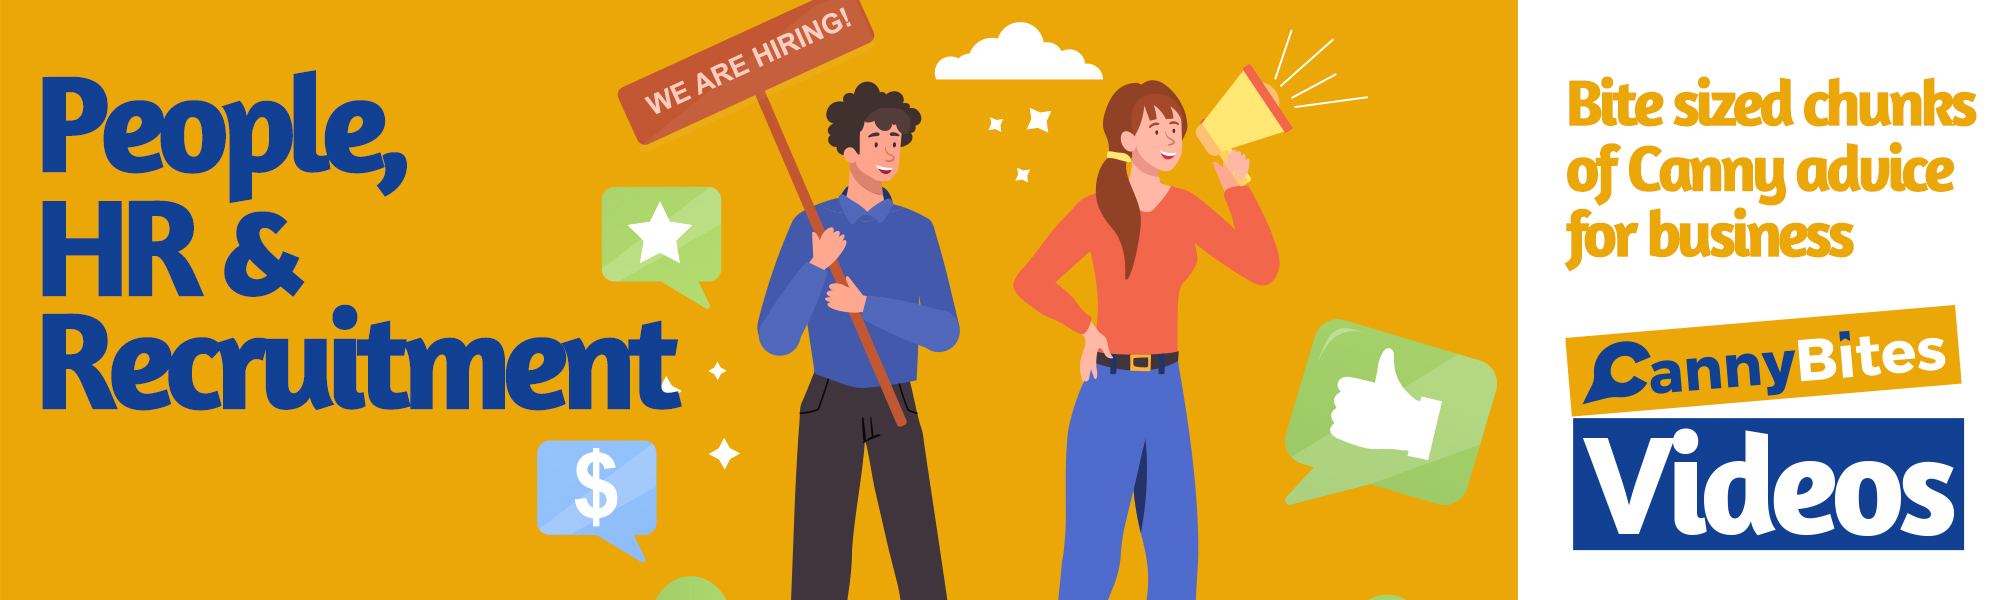 people hr and recruitment